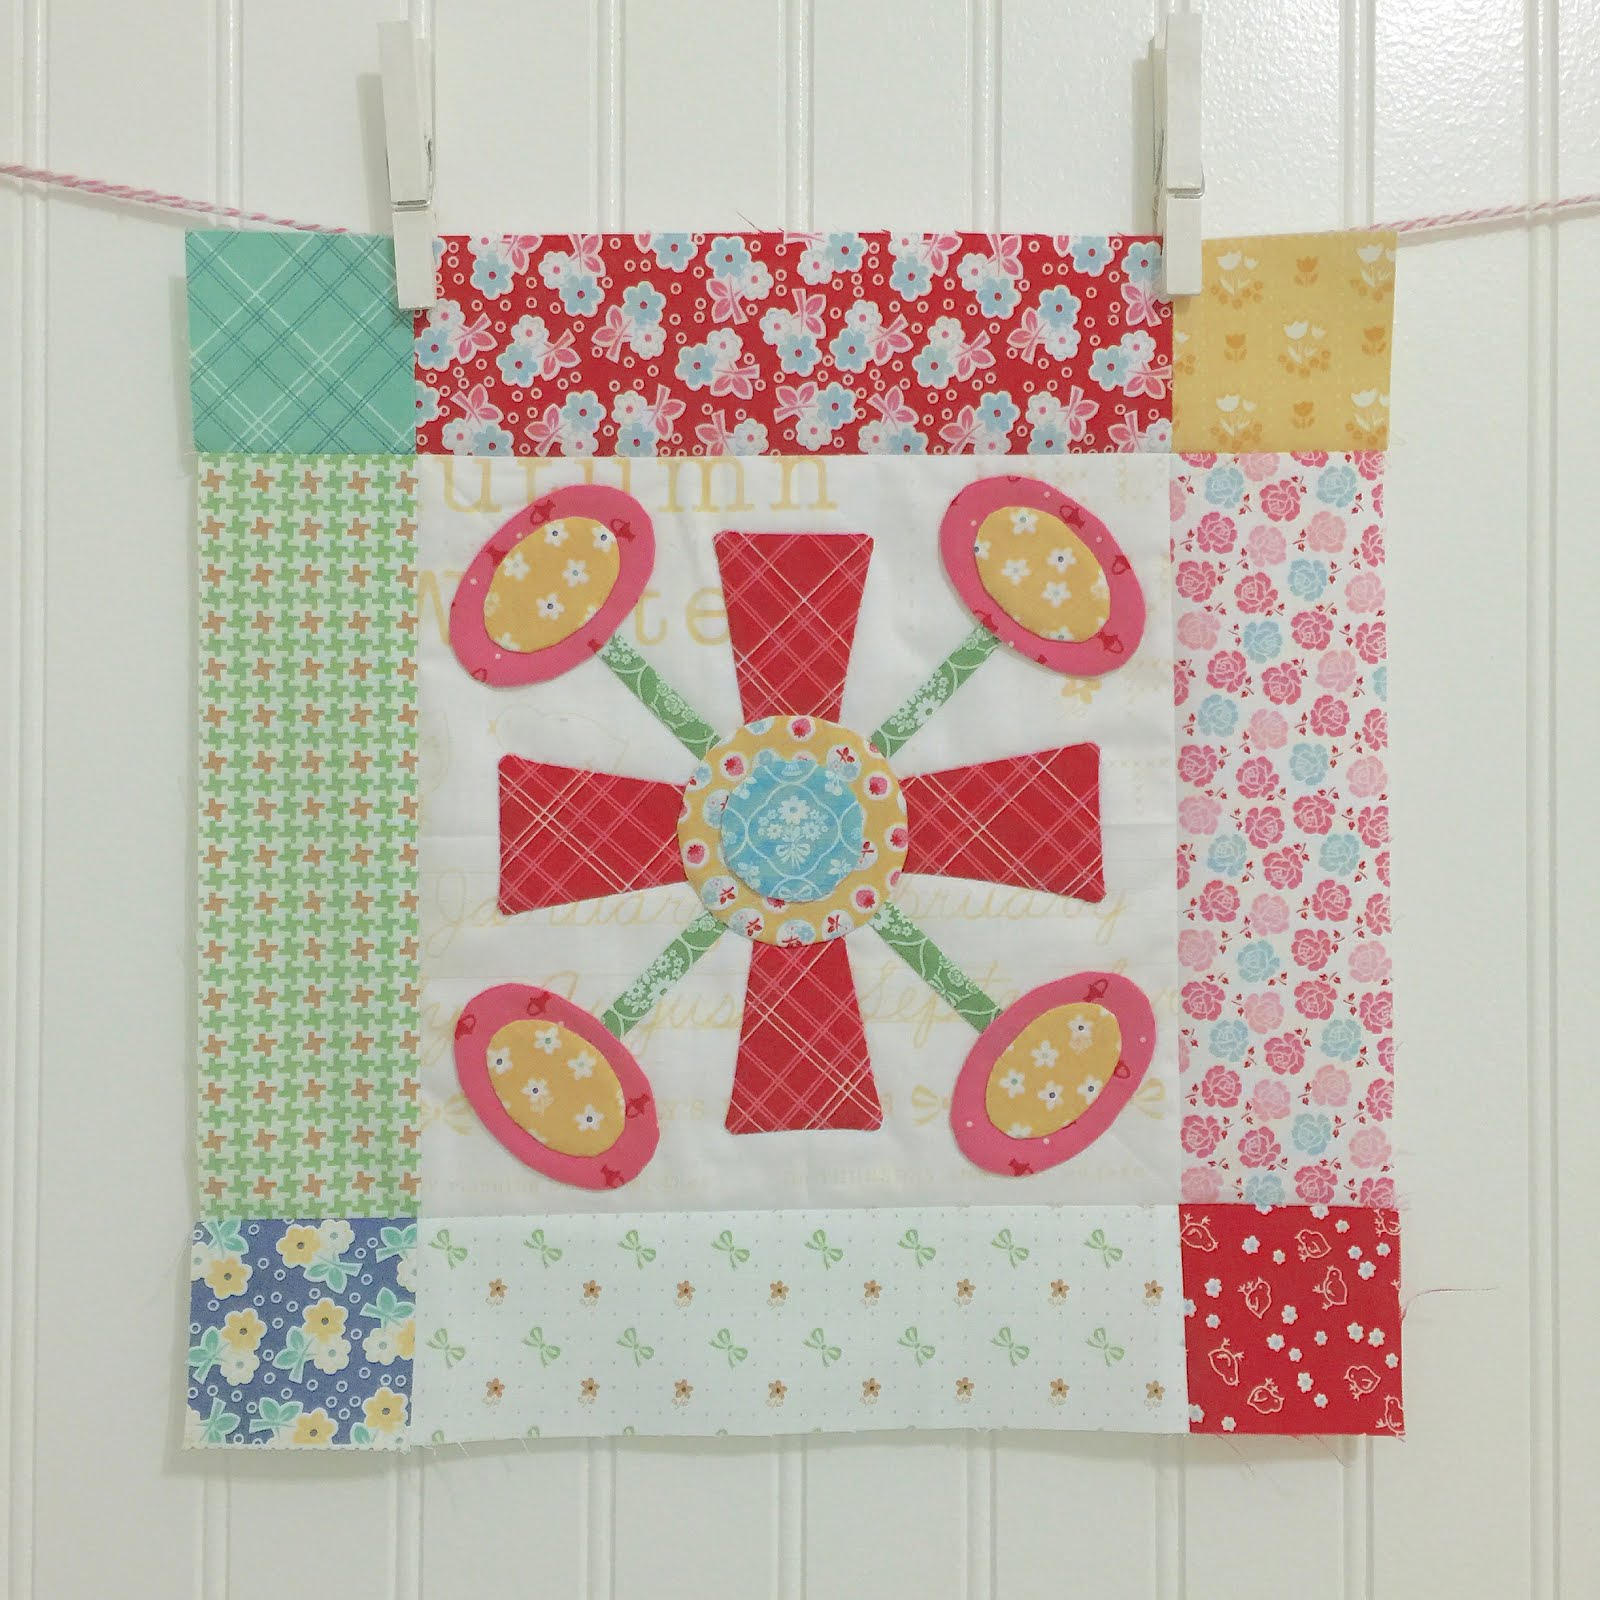 BLOOM Sew Along! 8